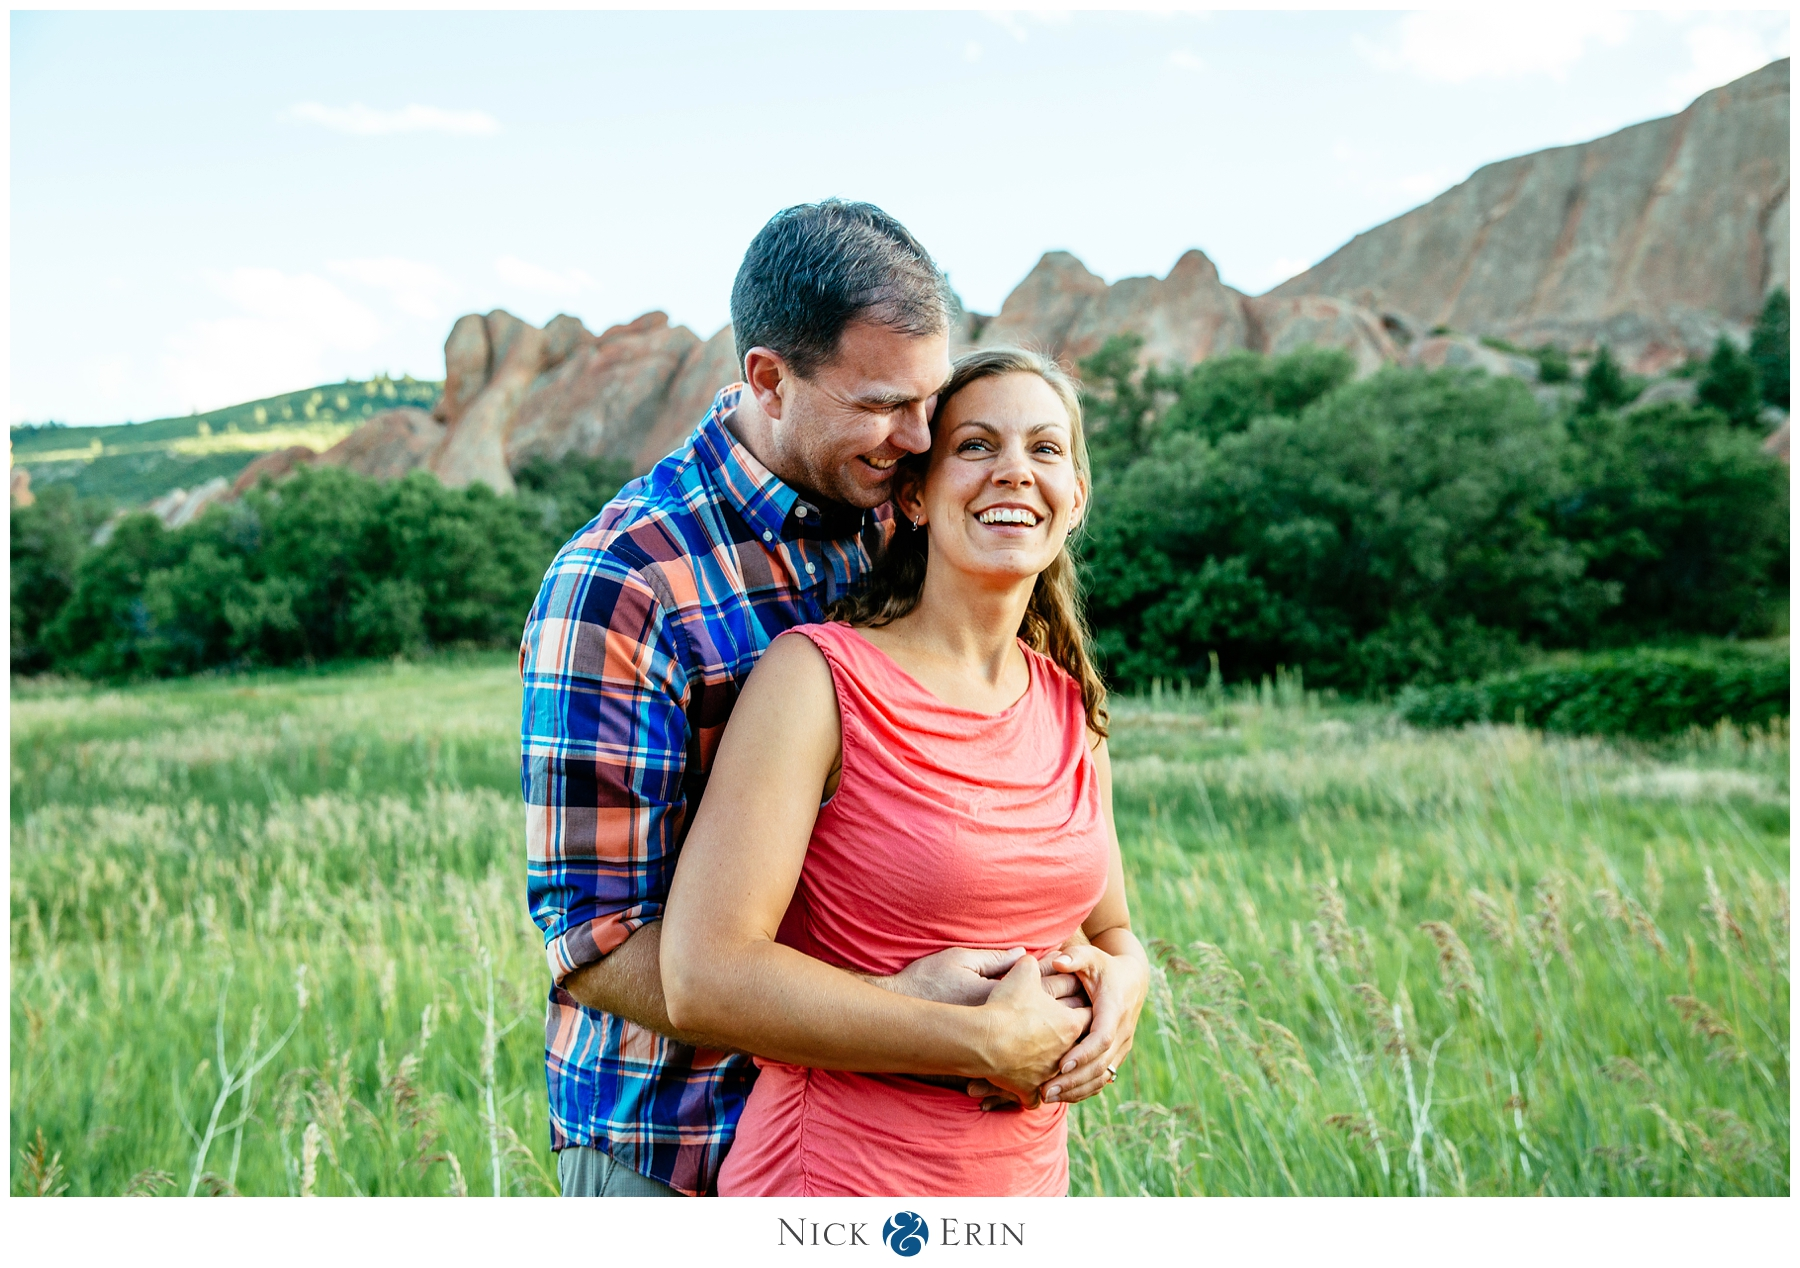 Donner_Photography_Denver Colorado Mountains Family Session_0015